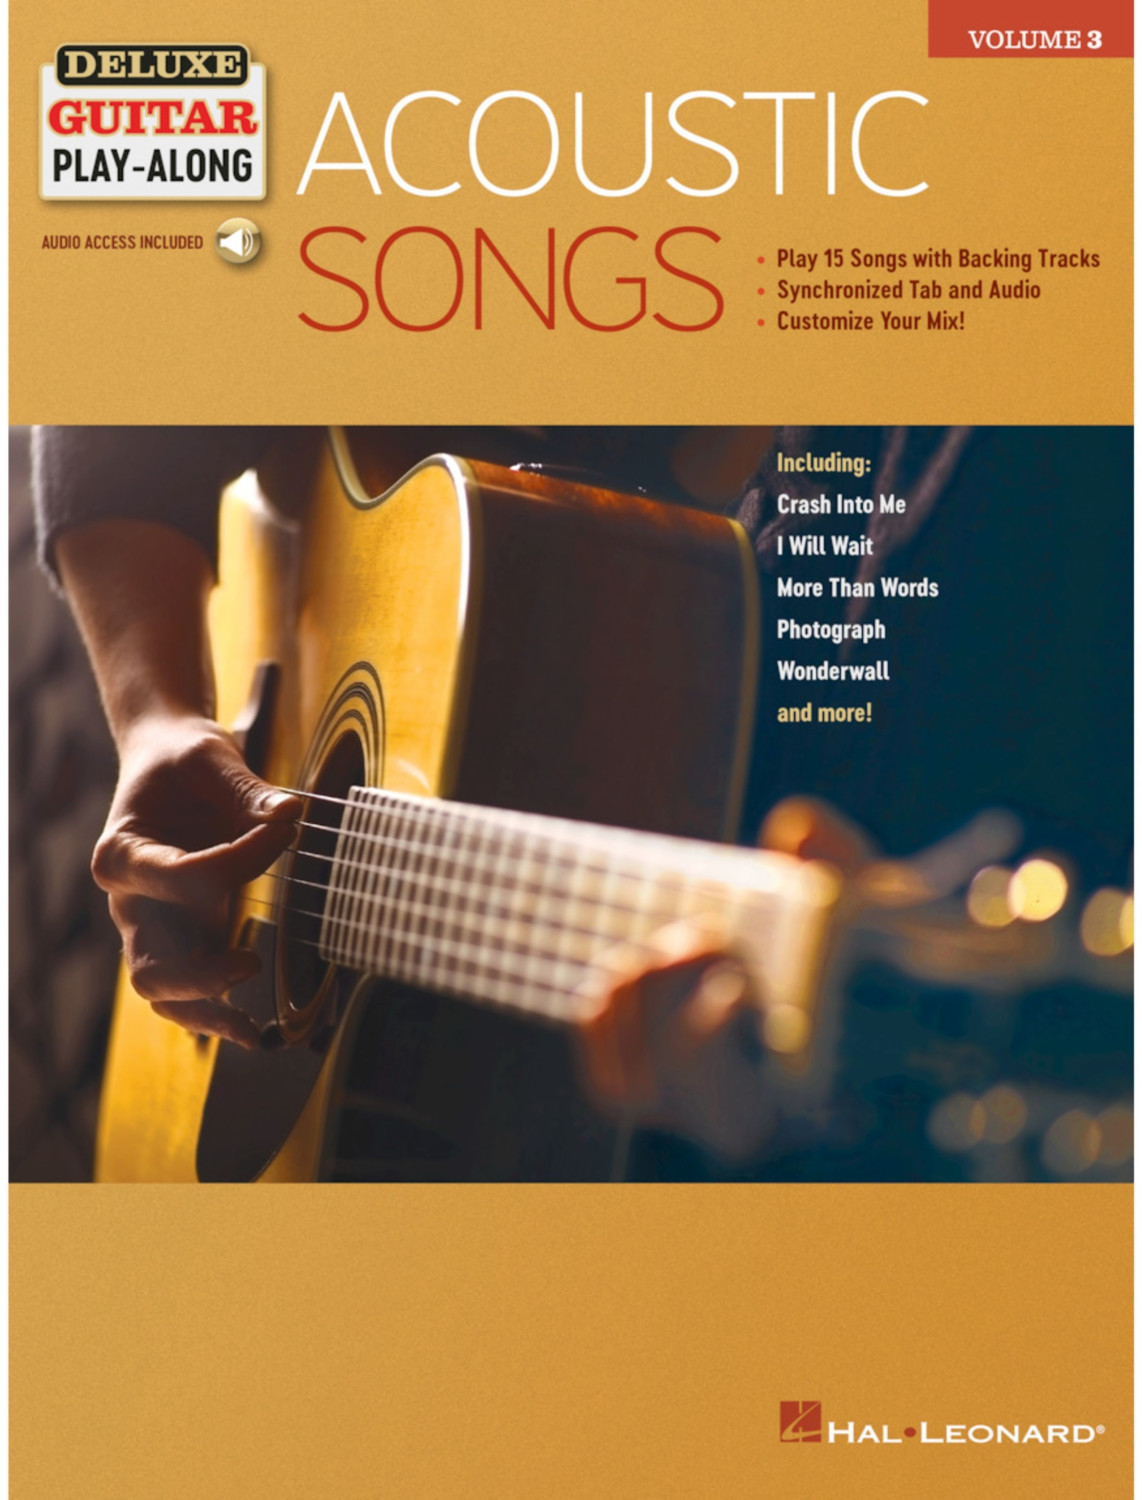 Image of Hal Leonard Acoustic Songs Deluxe Guitar Play-Along Volume 3